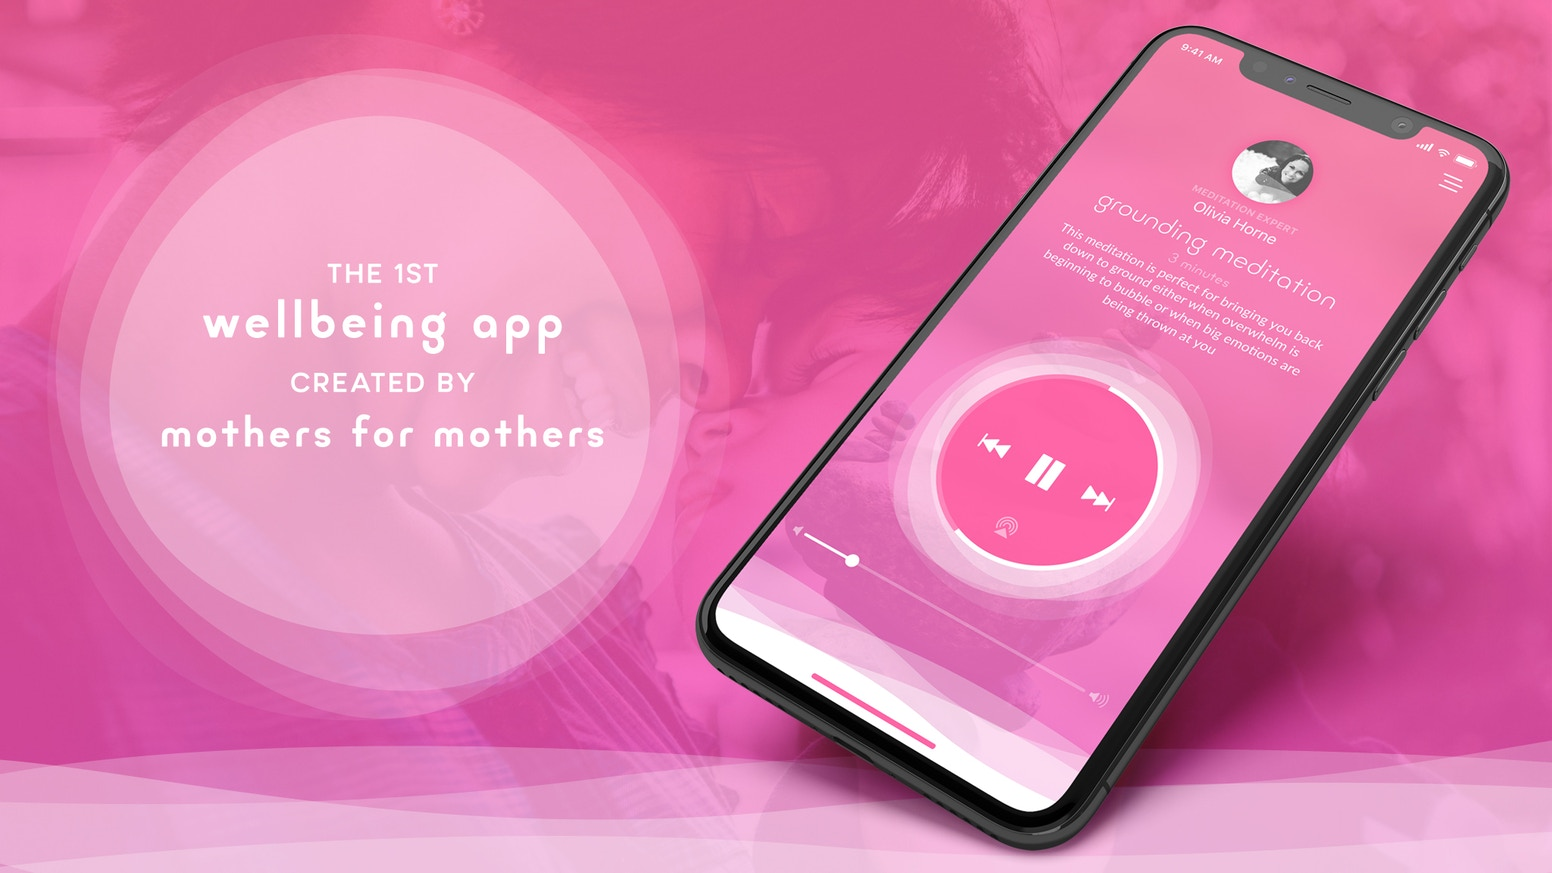 Help us launch the Nourish app and revolutionise motherhood. A 'go-to' resource for motivation & support in emotional wellbeing.